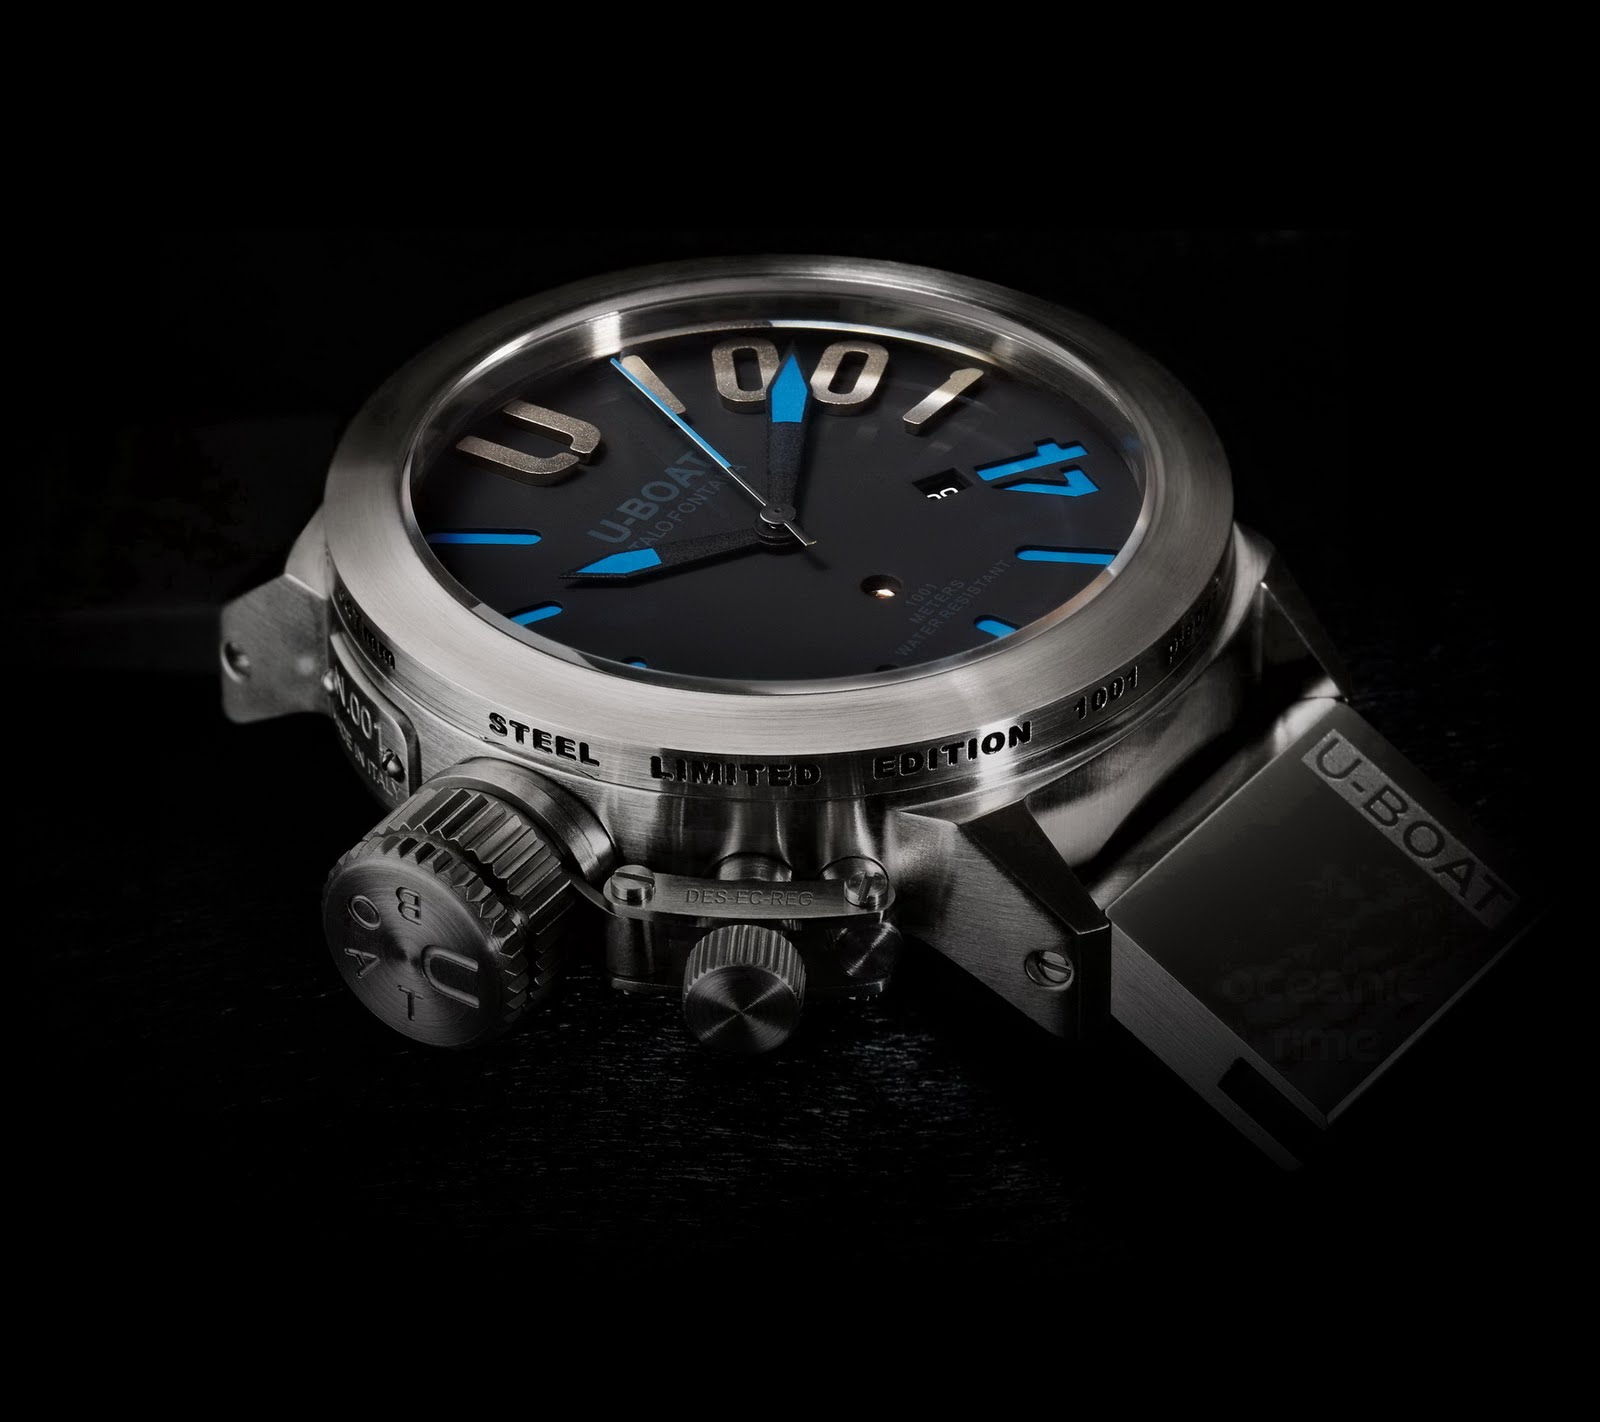 U-Boat Heavy Limited Edition Waterproof Watch-U 1001